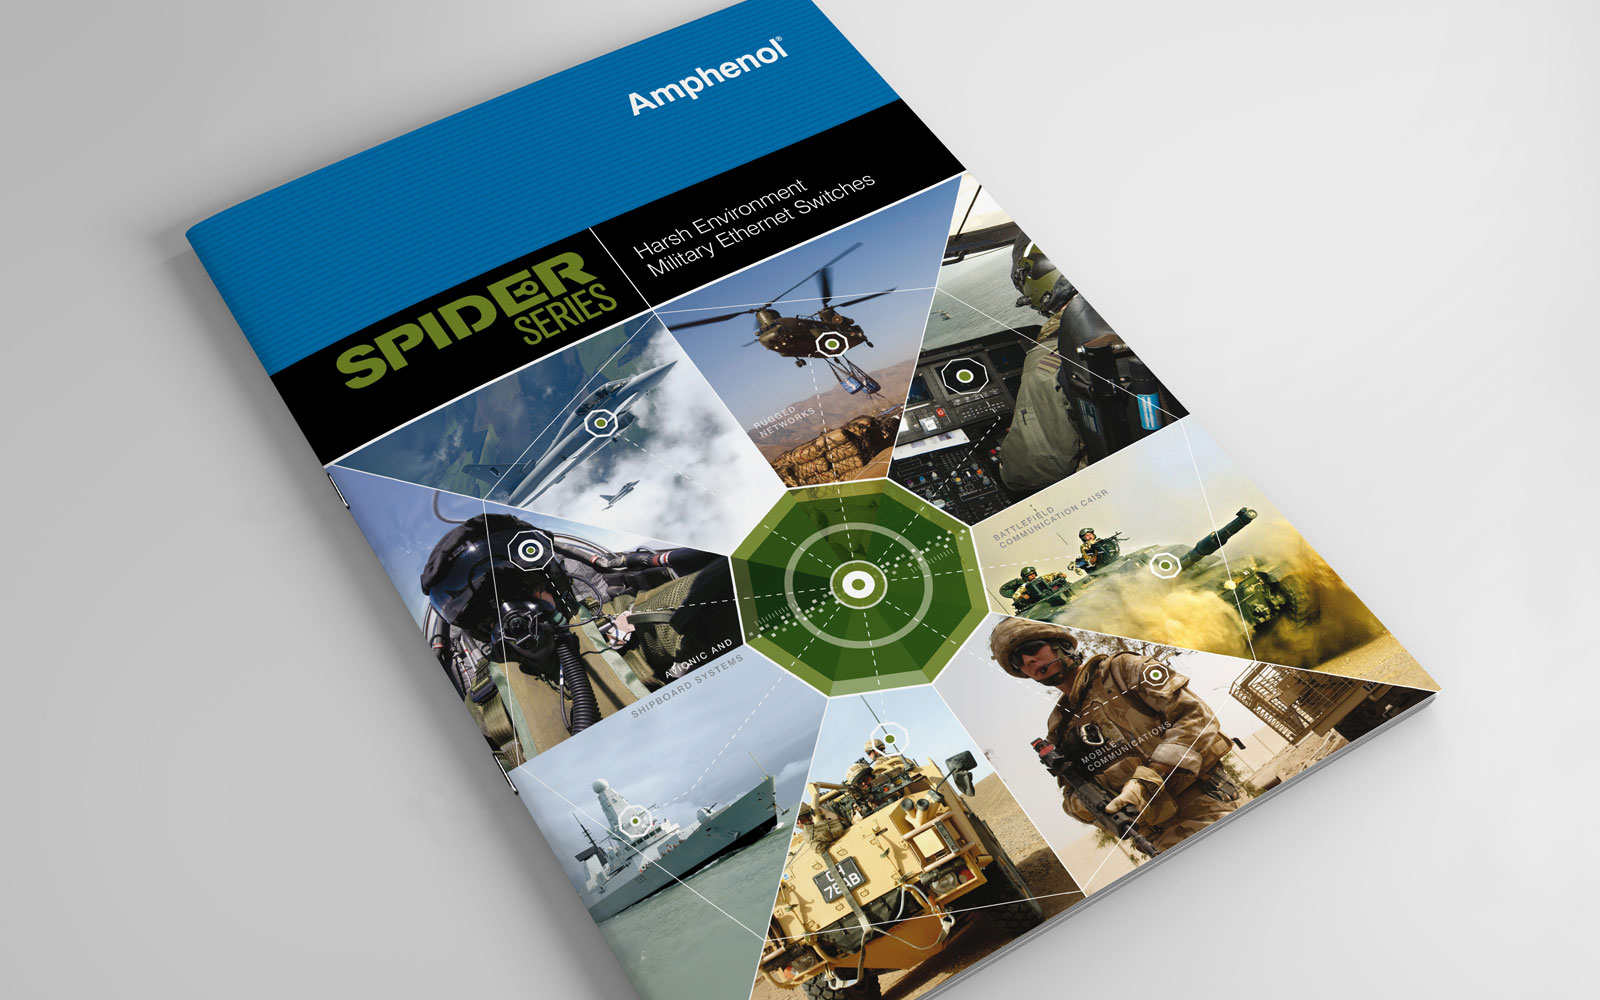 Buzzword creates a series of capability brochures for Amphenol